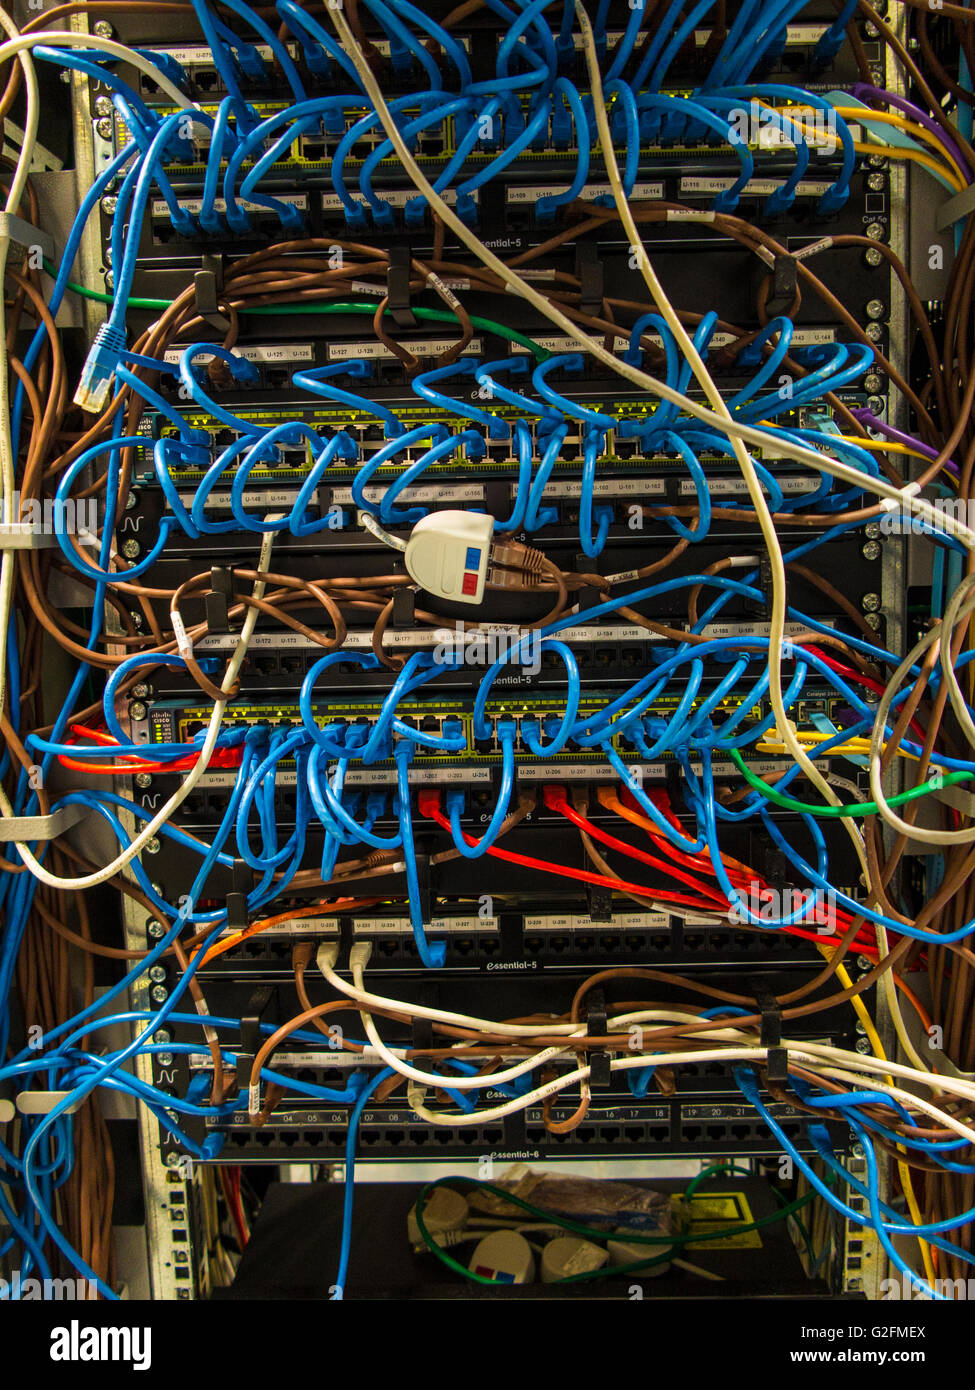 complex wiring stock photos complex wiring stock images alamy rh alamy com complex writing solutions complex writing about keeping dogs curbed